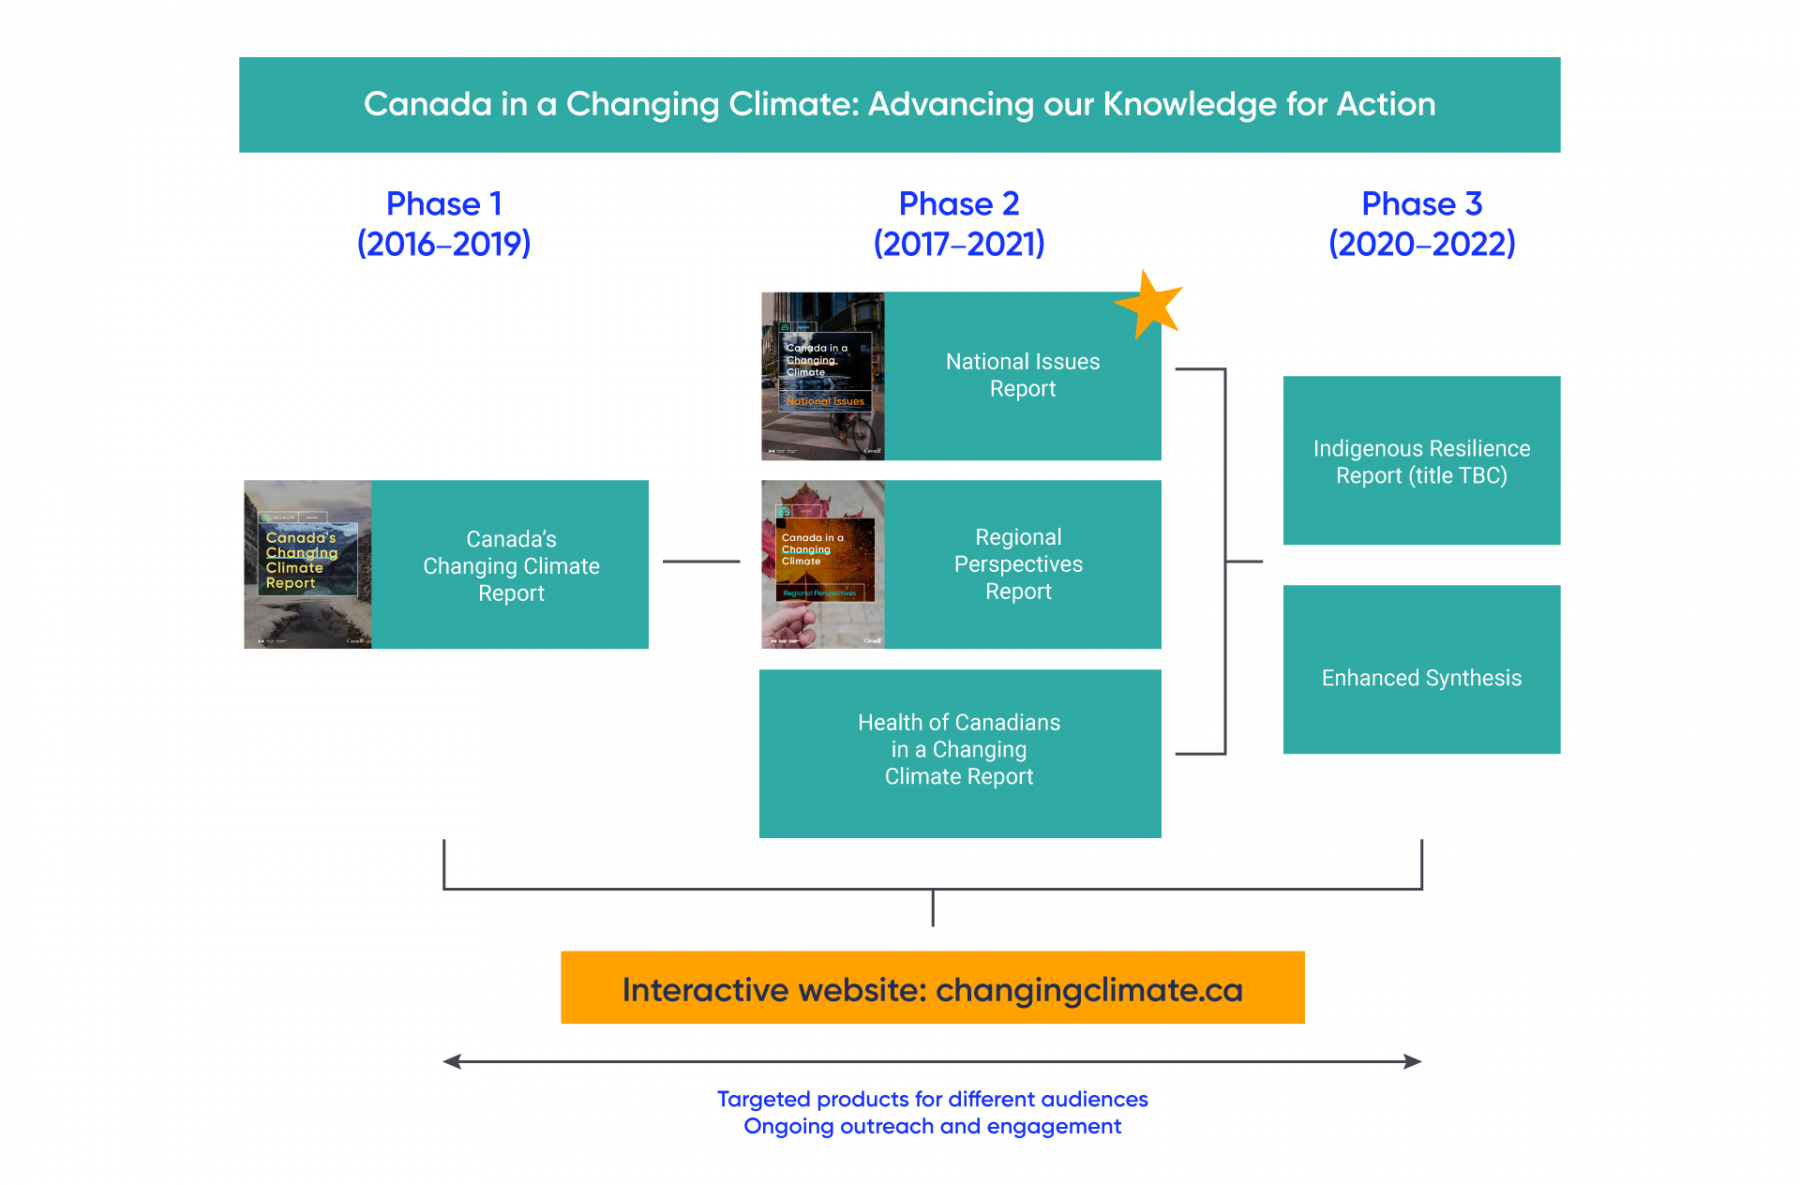 Figure with images representing the reports developed under the national assessment process between 2016 and 2022. Phase 1, taking place between 2016 and 2019, involves the production of a report titled Canada's Changing Climate Report. Phase 2, taking place between 2017 and 2021, involves the production of the National Issues Report, Regional Perspectives Report, and the Health of Canadians in a Changing Climate Report. Phase 3, taking place between 2020 and 2022, involves the production of a report on Indigenous Resilience (title to be confirmed) and an Enhanced Synthesis report. All of these reports will be available on the interactive website, changingclimate.ca.